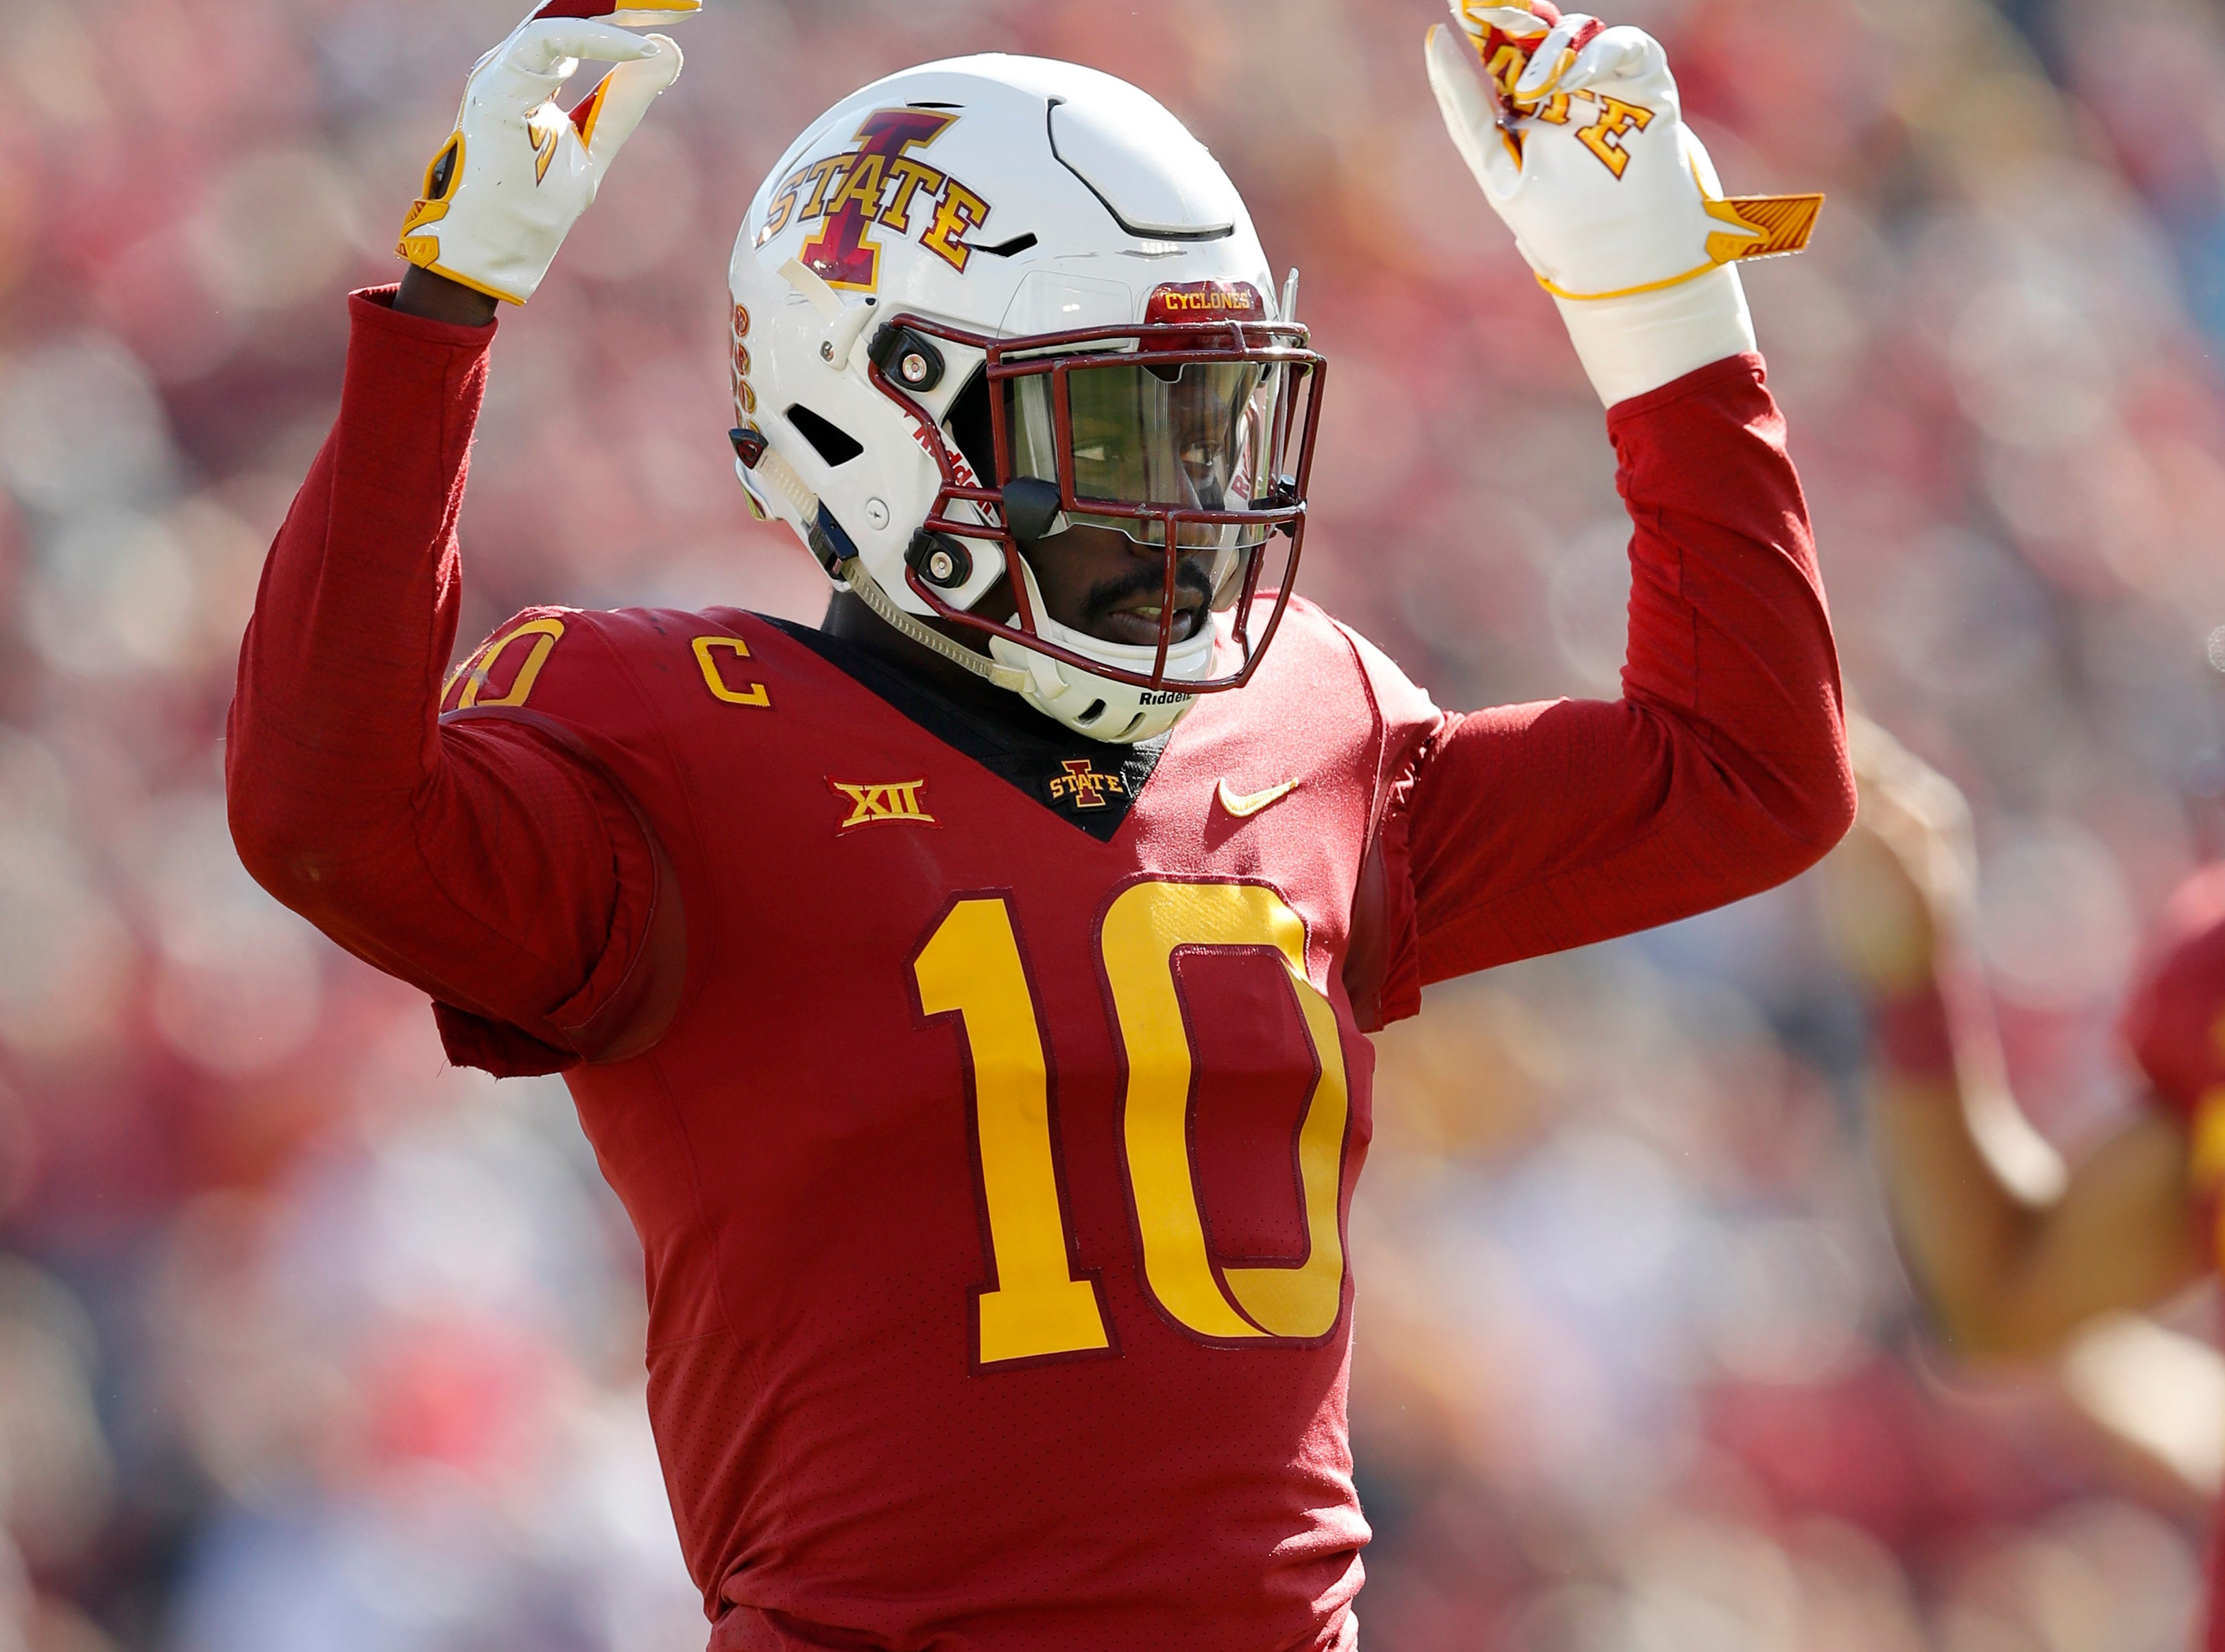 Iowa State defensive back Brian Peavy reacts during the first half of an NCAA college football game against Texas Tech, Saturday, Oct. 27, 2018, in Ames, Iowa.